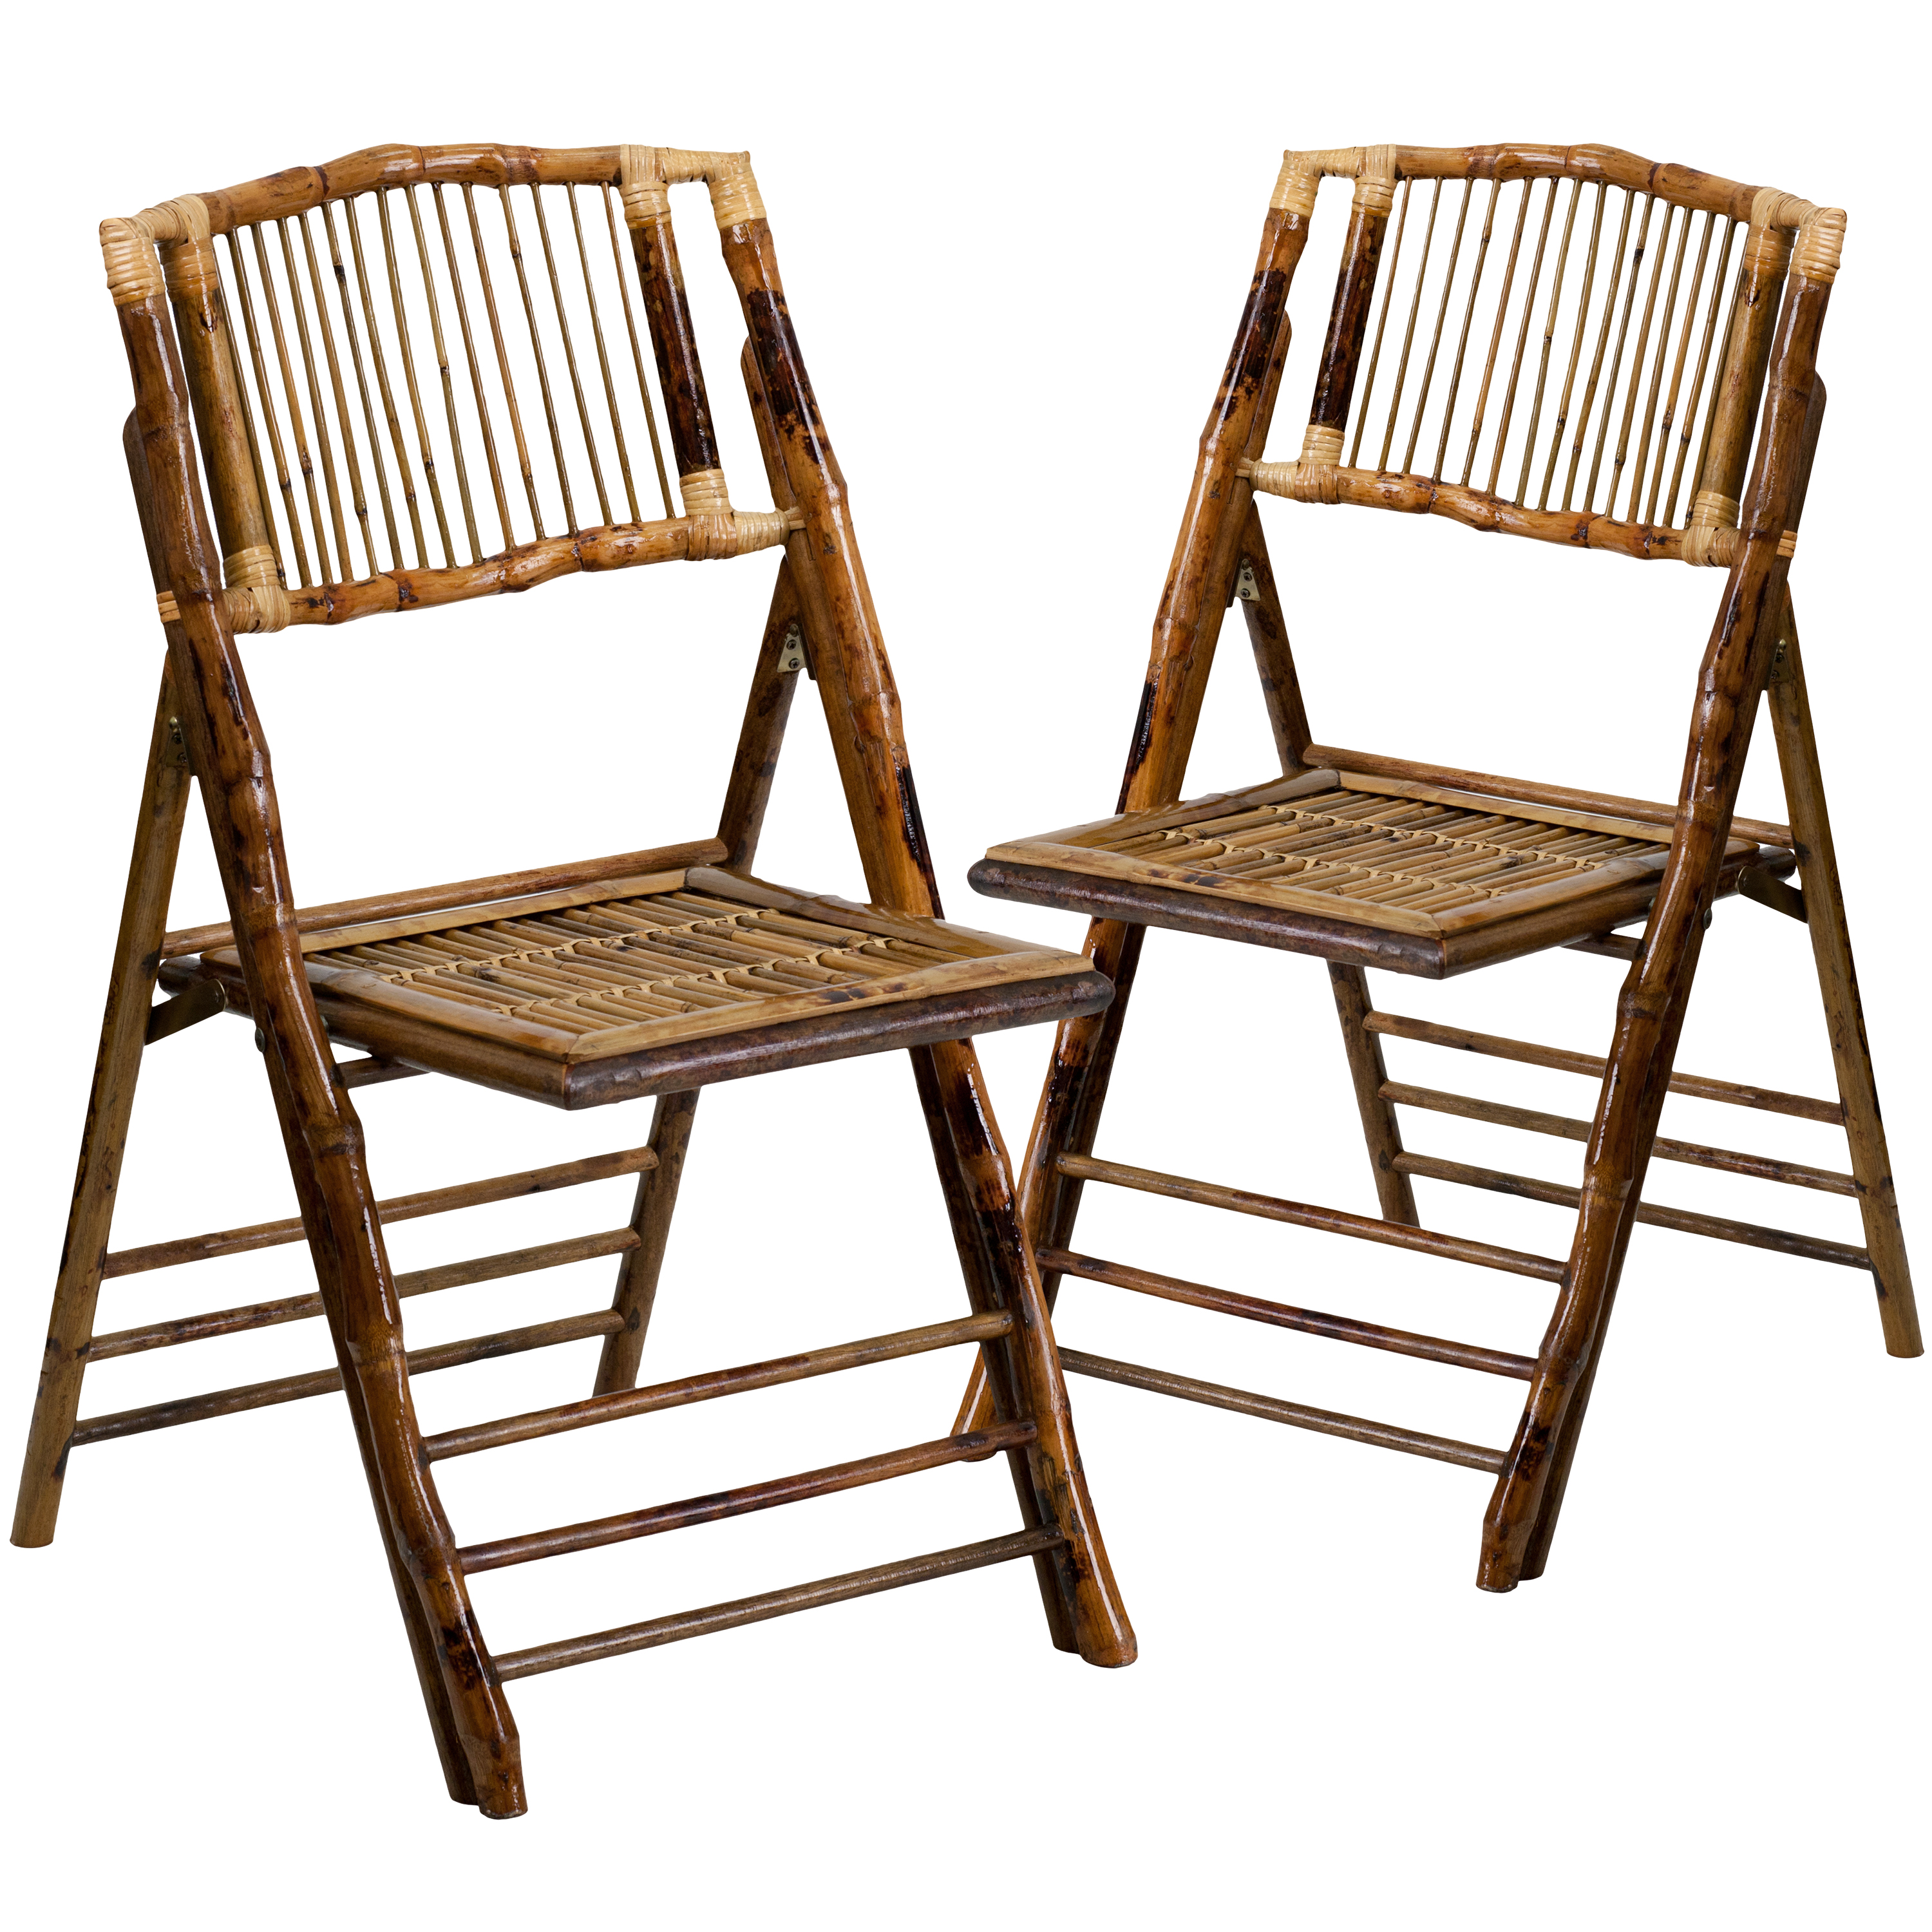 Bamboo Folding Chairs |Set of 2 Bamboo Wood Folding Chairs